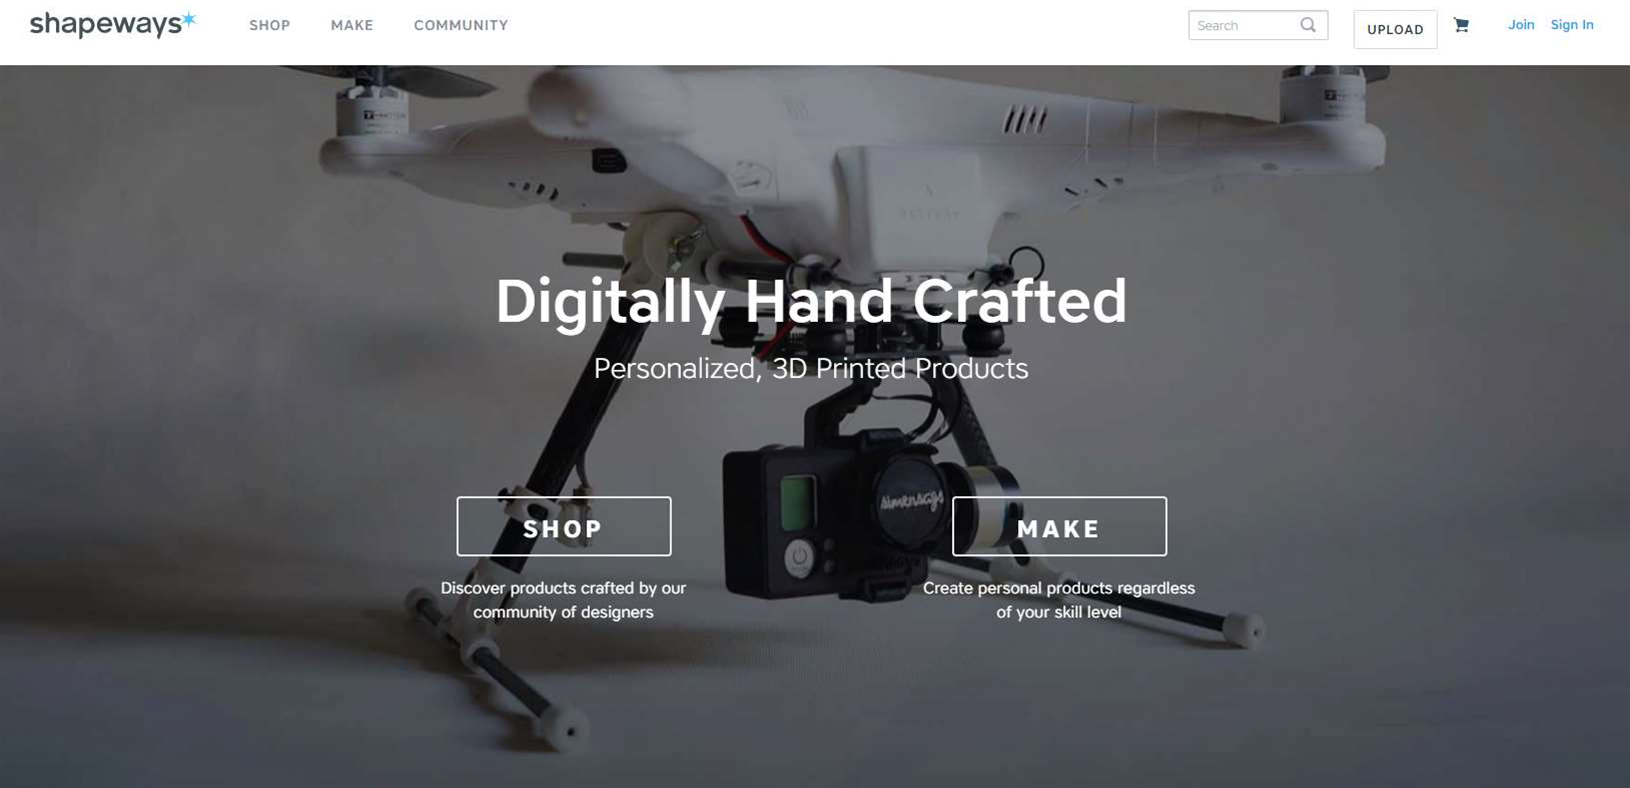 Shapeways urges customers to change passwords after data breach